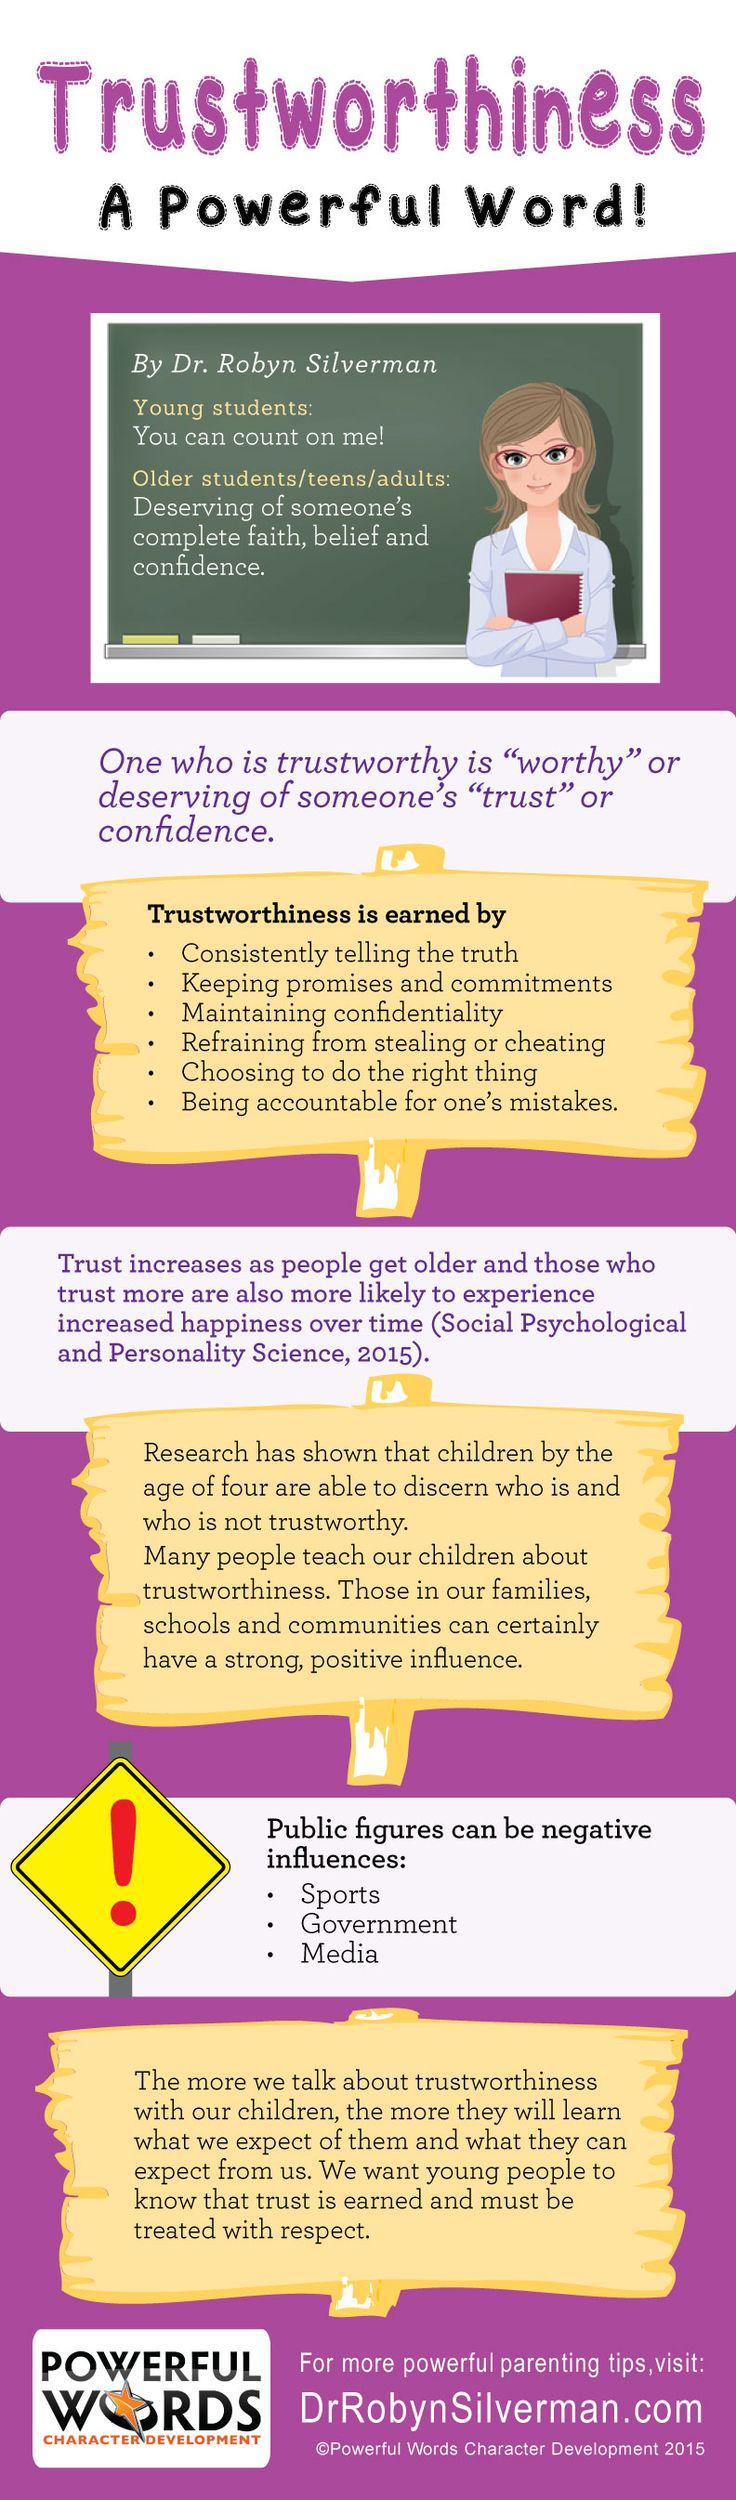 Trustworthiness--A Powerful Word for June #drrobyn #characterdevelopment #parenting